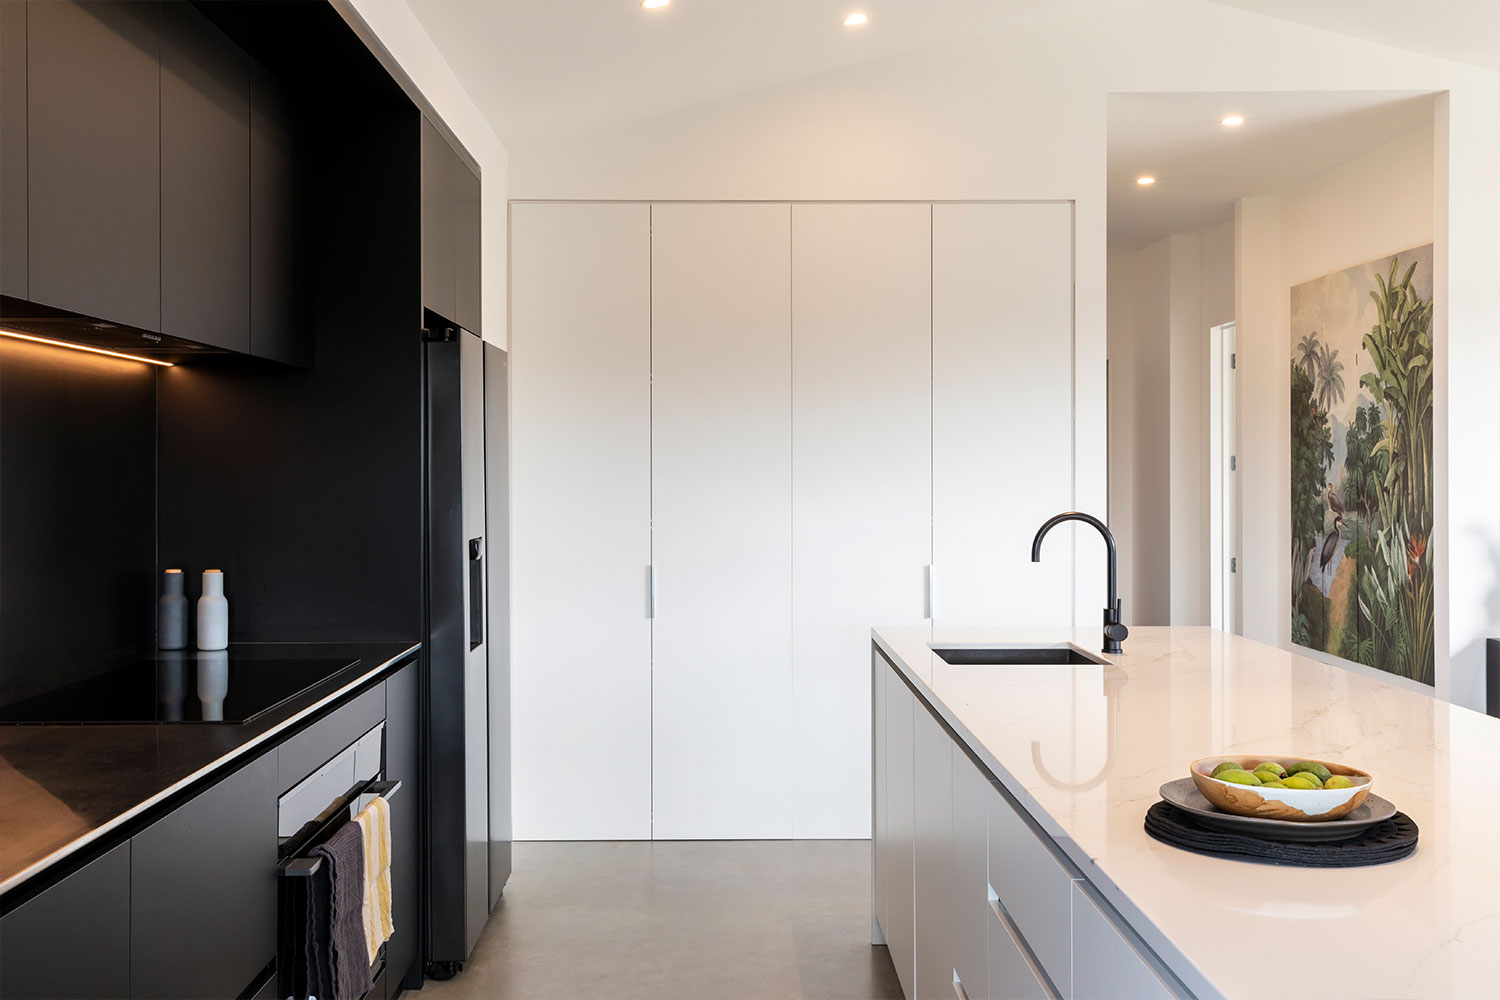 https://www.benchmarkhomes.co.nz/wp-content/uploads/2021/06/Projects-Evans-3-1500-x-1000-High-Res.jpg